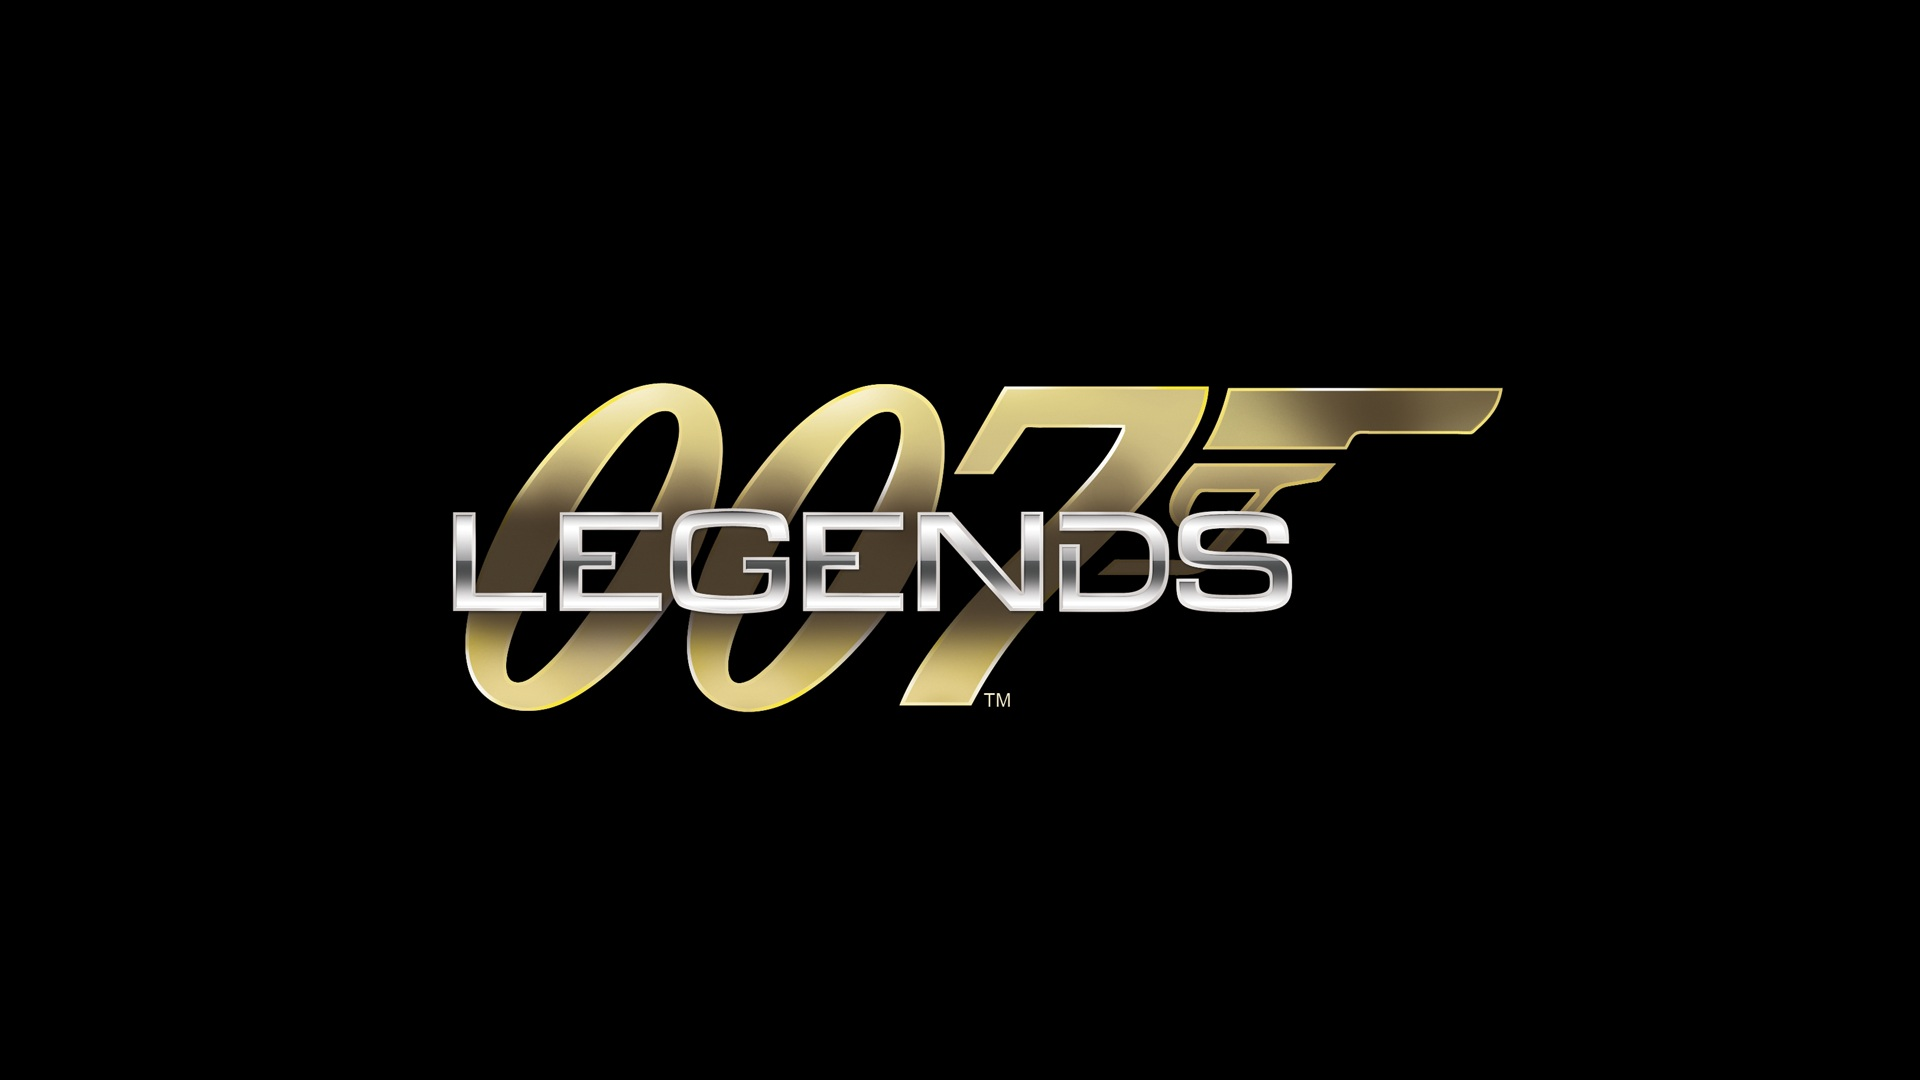 007 Legends wallpaper 1 WallpapersBQ 1920x1080